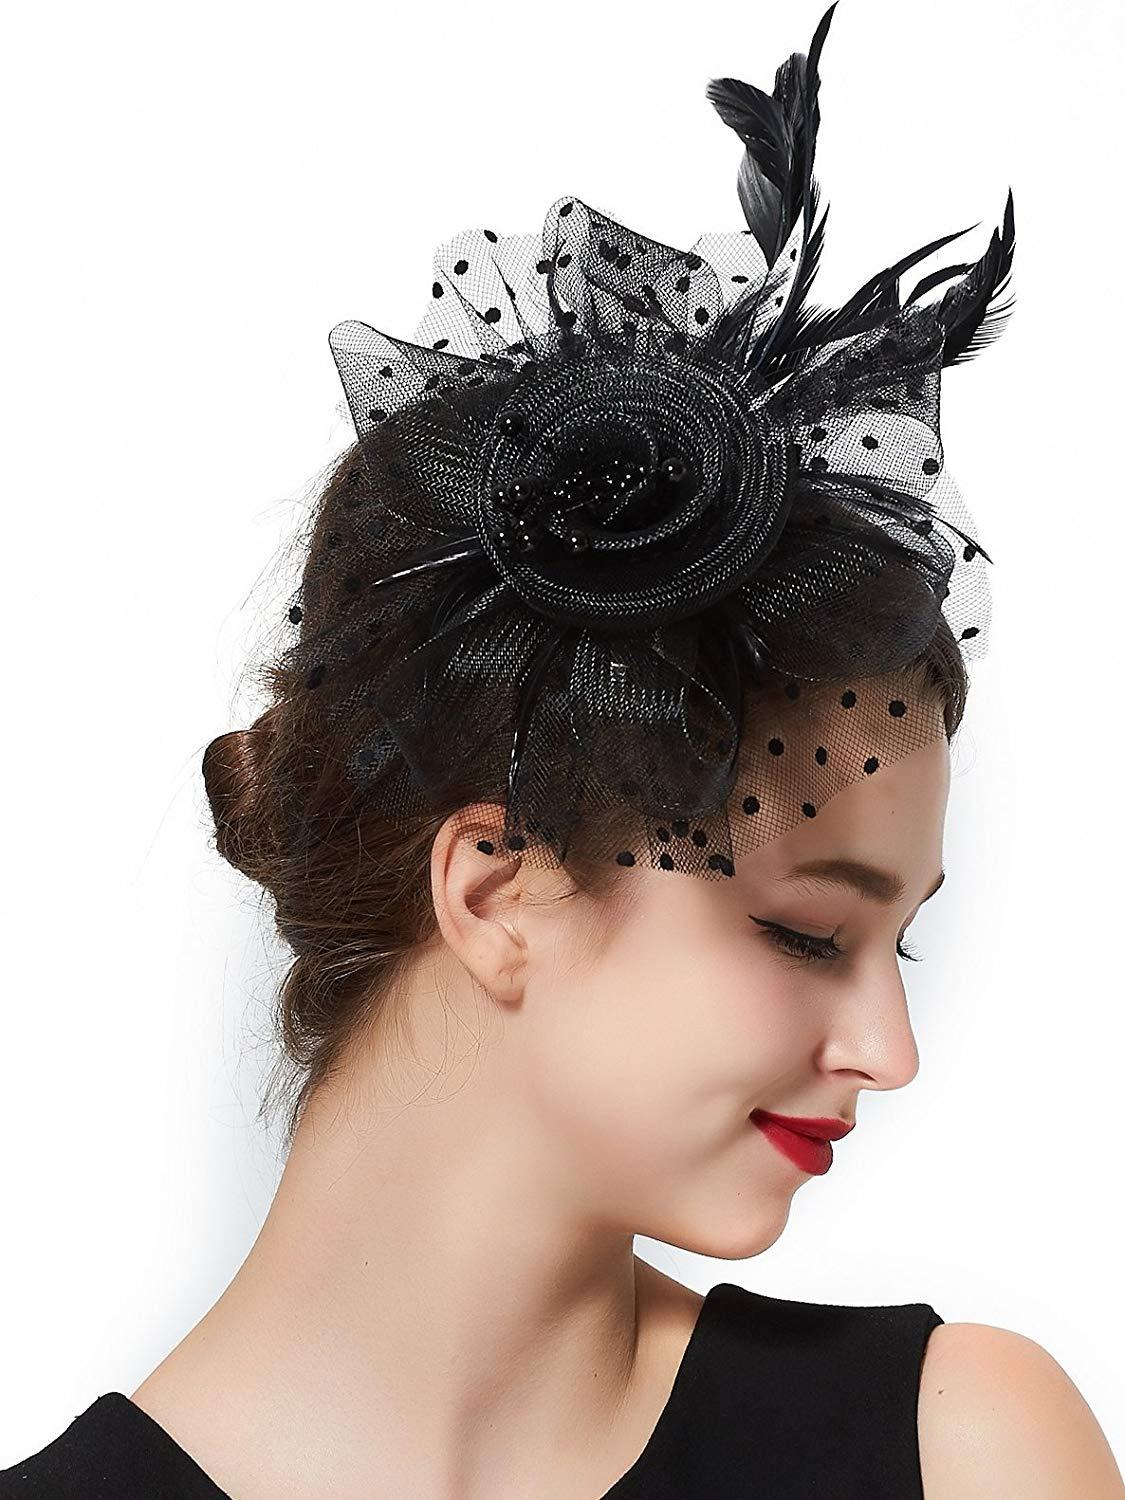 d6778a6a Fascinators For Women Tea Party Headband Hat Kentucky Derby Wedding  Headpiece Cocktail Flower Mesh Feathers Hair Clip 1920s Lady Accessories UK  2019 From ...